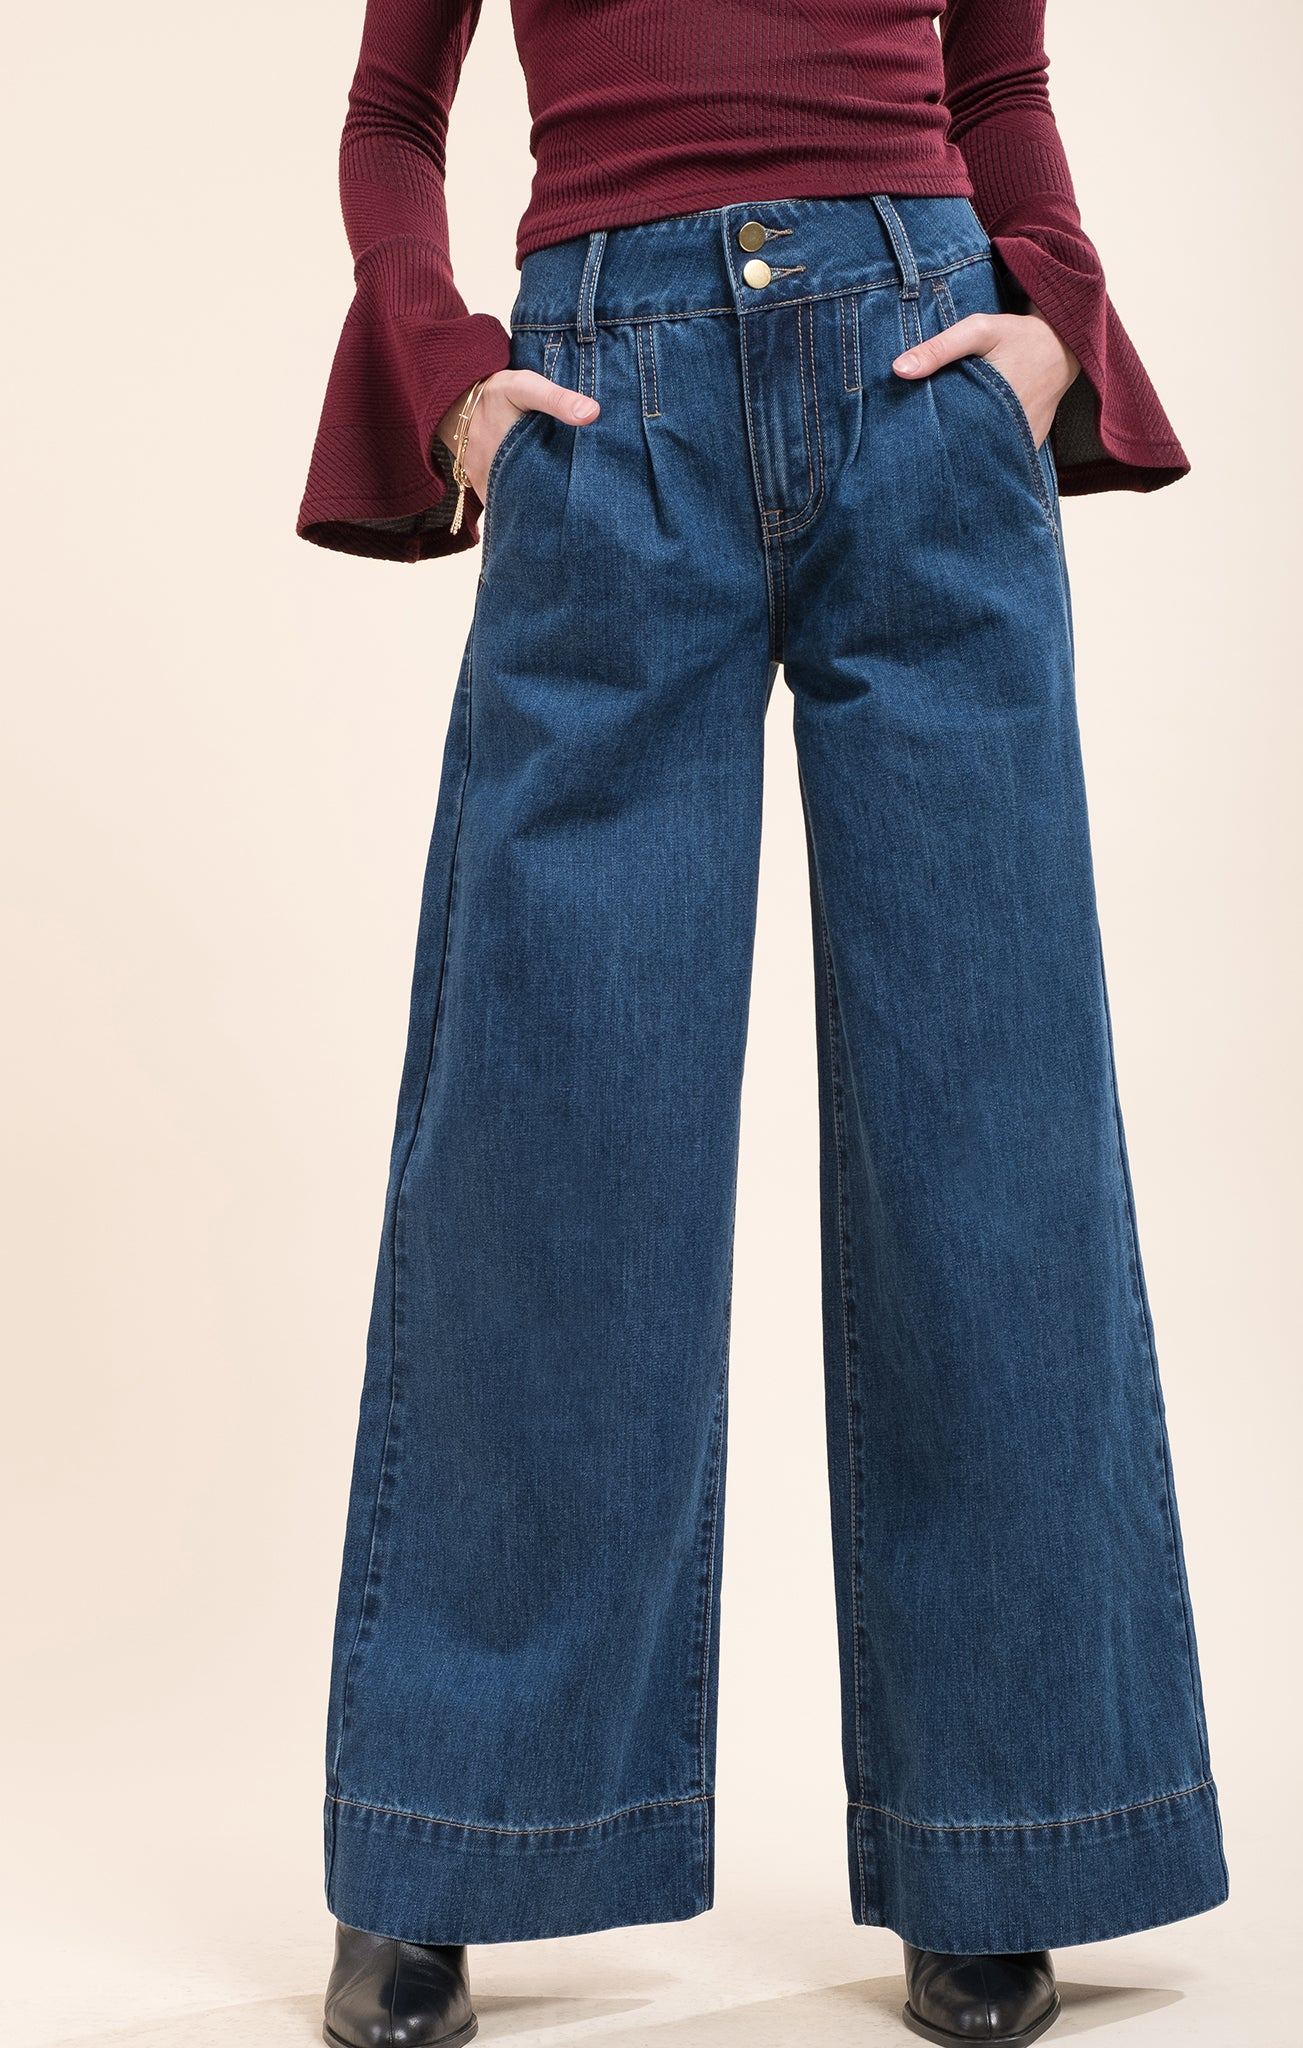 Shop a great selection of Women's Flare & Wide Leg Jeans at Nordstrom Rack. Find designer Women's Flare & Wide Leg Jeans up to 70% off and get free shipping on orders over $